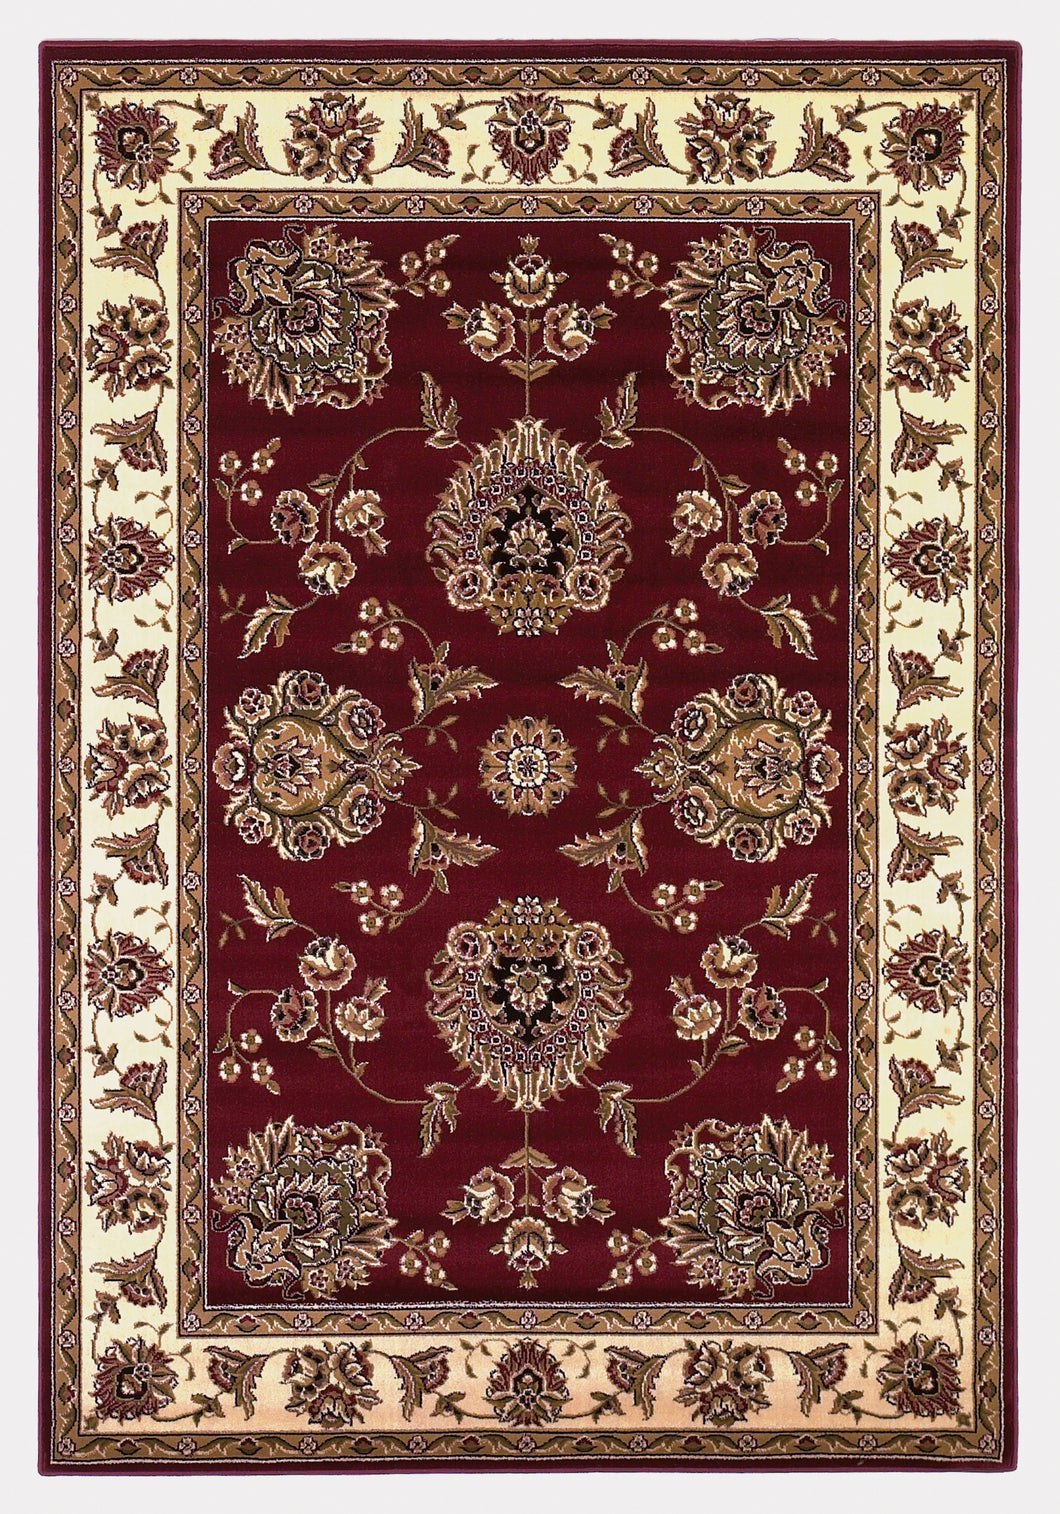 Kas Rugs Cambridge 7340 Red /Ivory Floral Mahal Area Rug